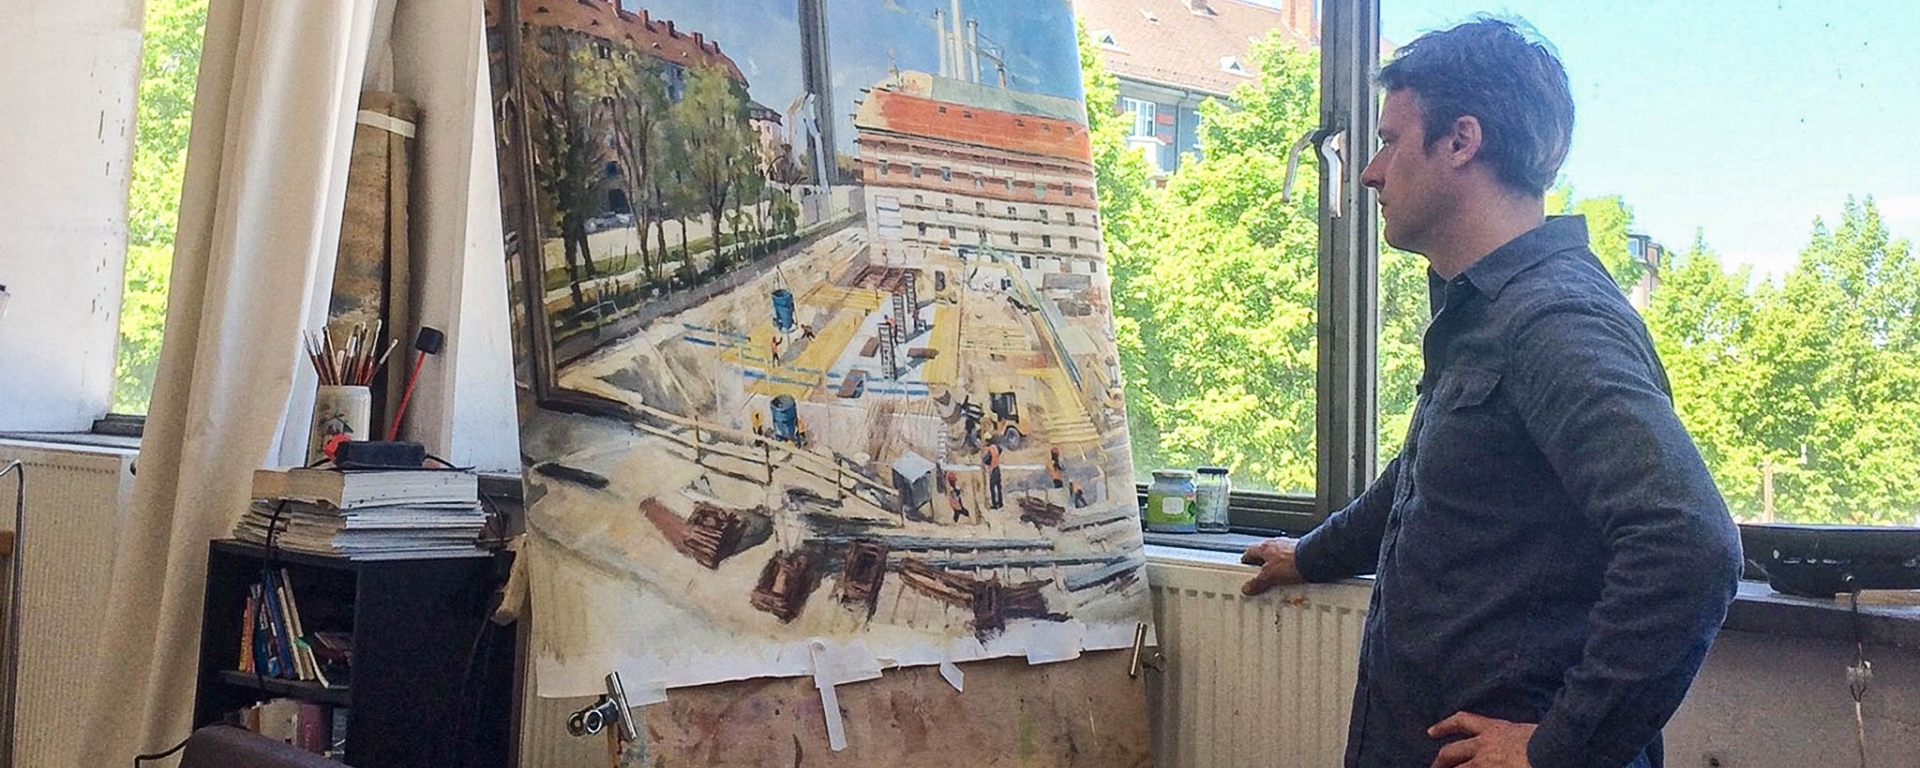 He Paints Where the Gasteig Sendling is Being Created: An Interview with Benjy Barnhart